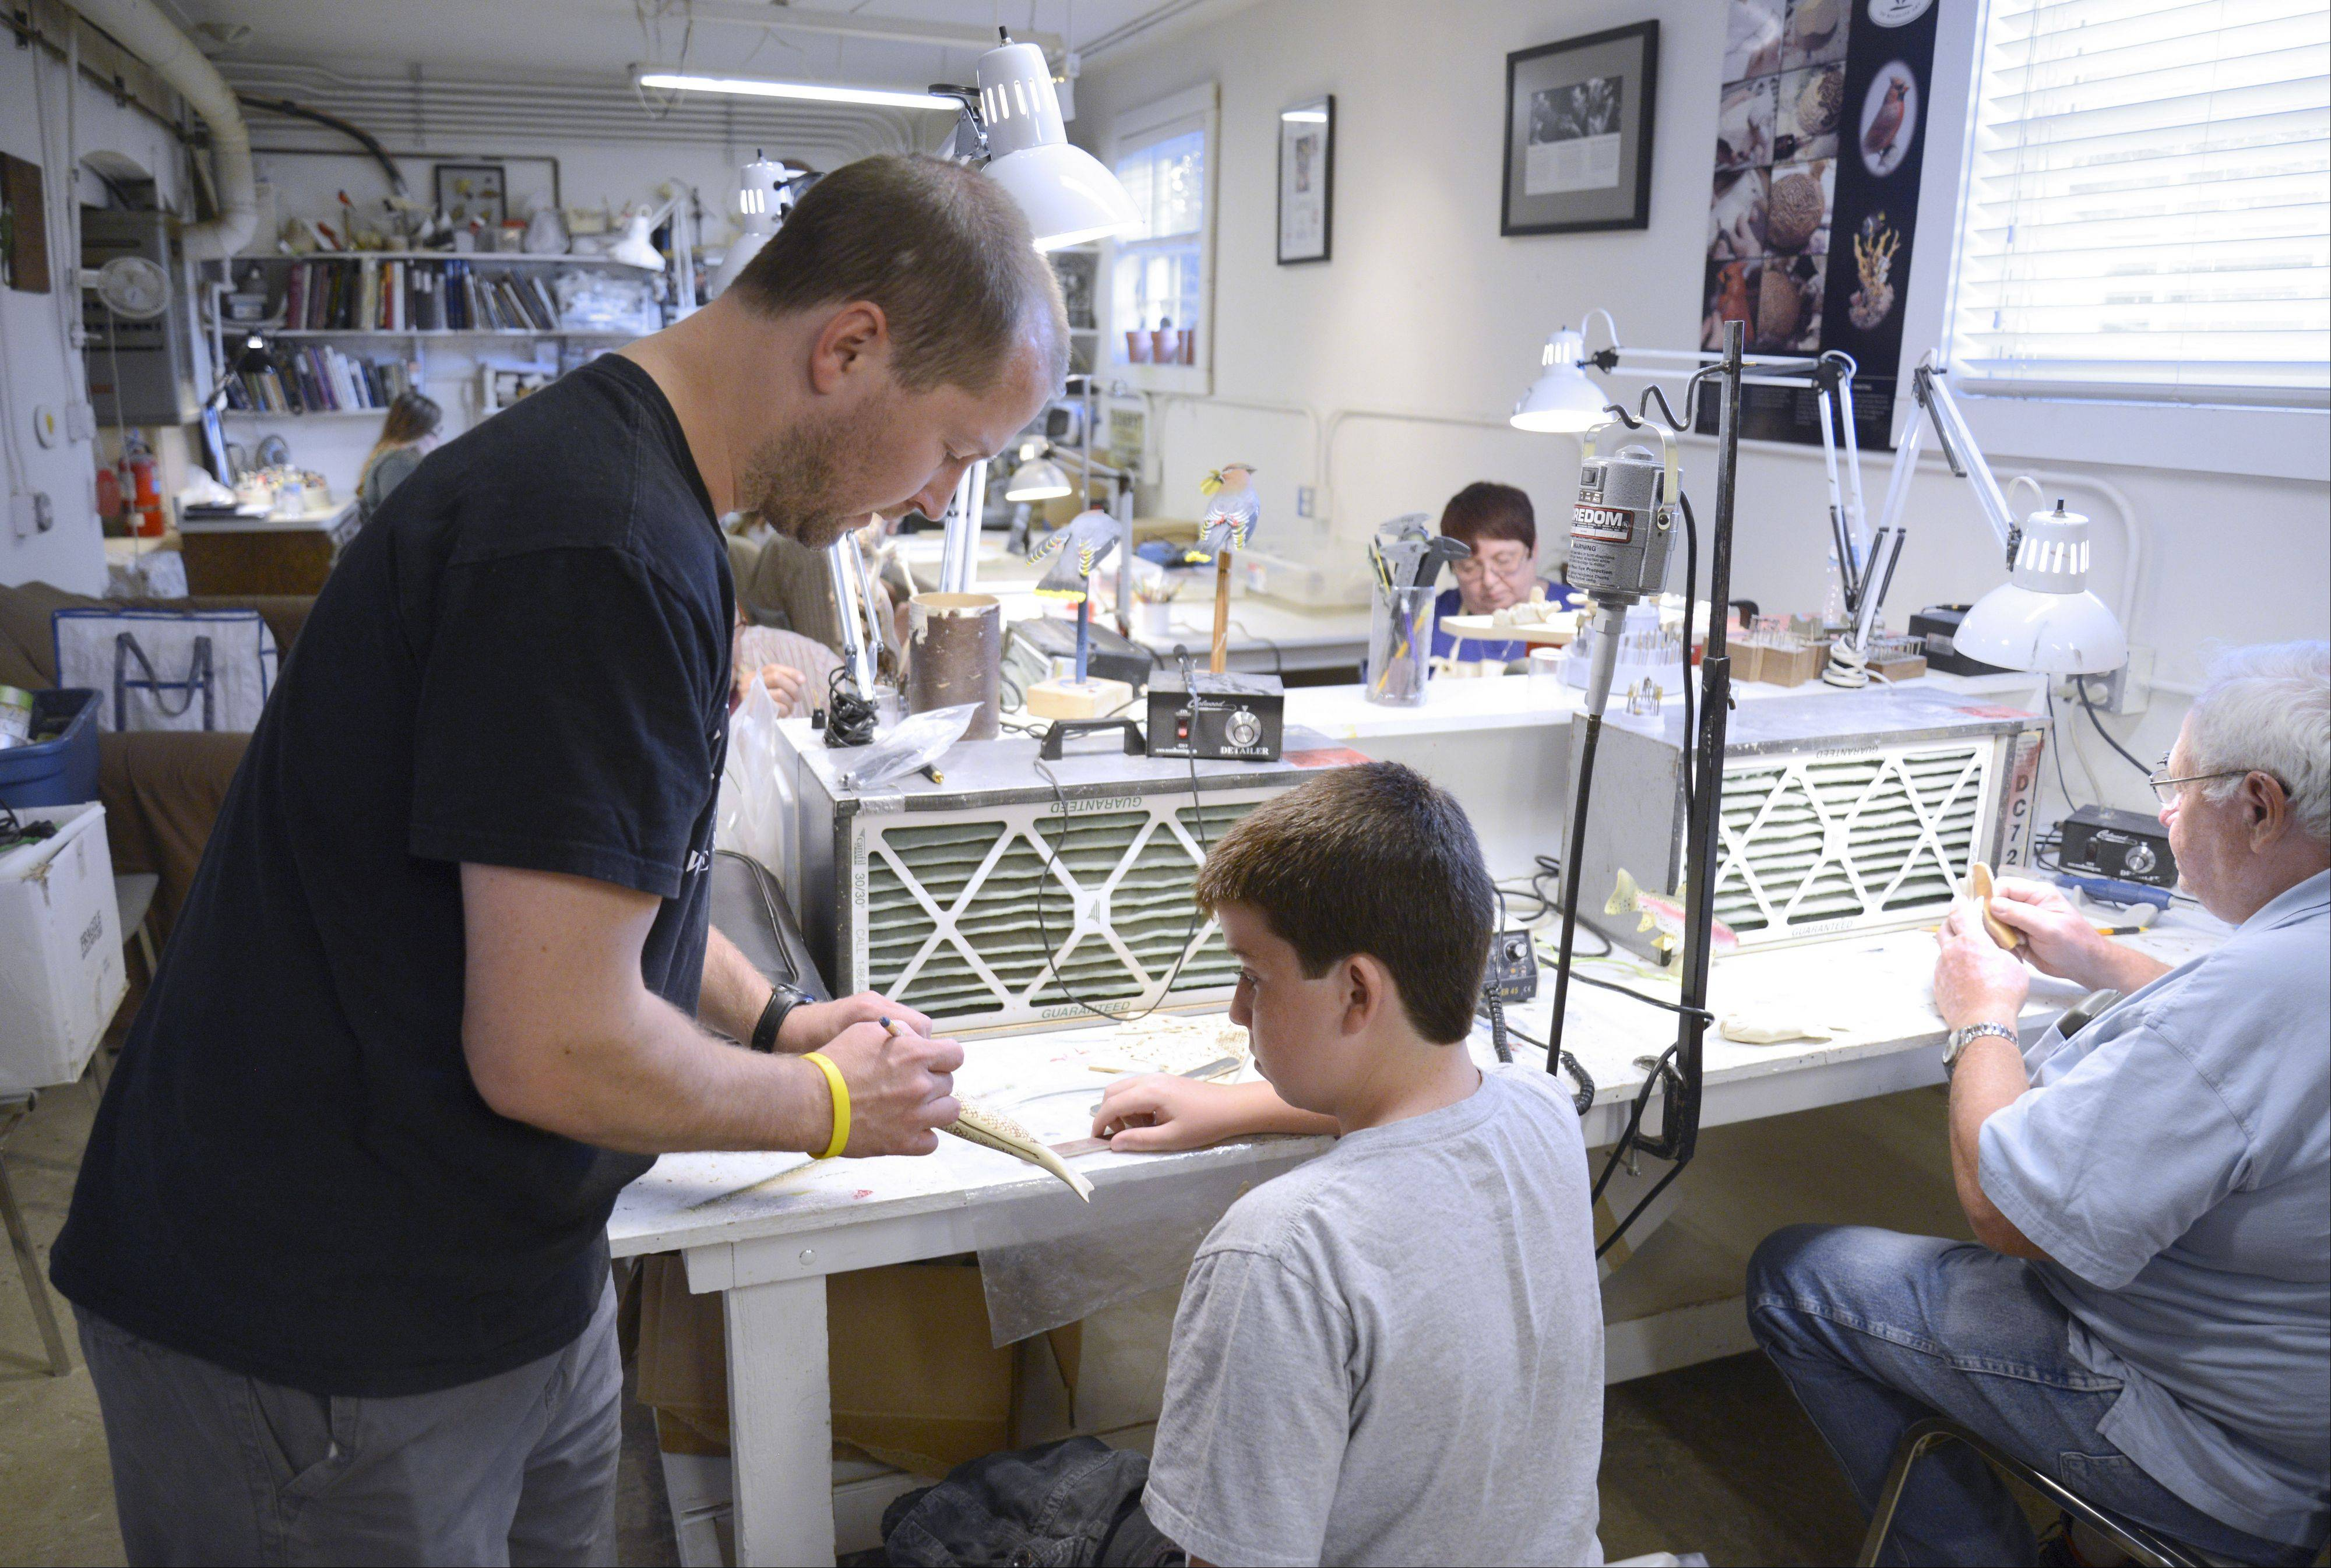 Josh Guge of the Guge Institute of Wildlife Art in Gilberts works with student Shane Cloonan, 12, of Elgin. Though he took up wood carving only about eight months ago, Shane already has established himself as one of the nation's best in his age group.